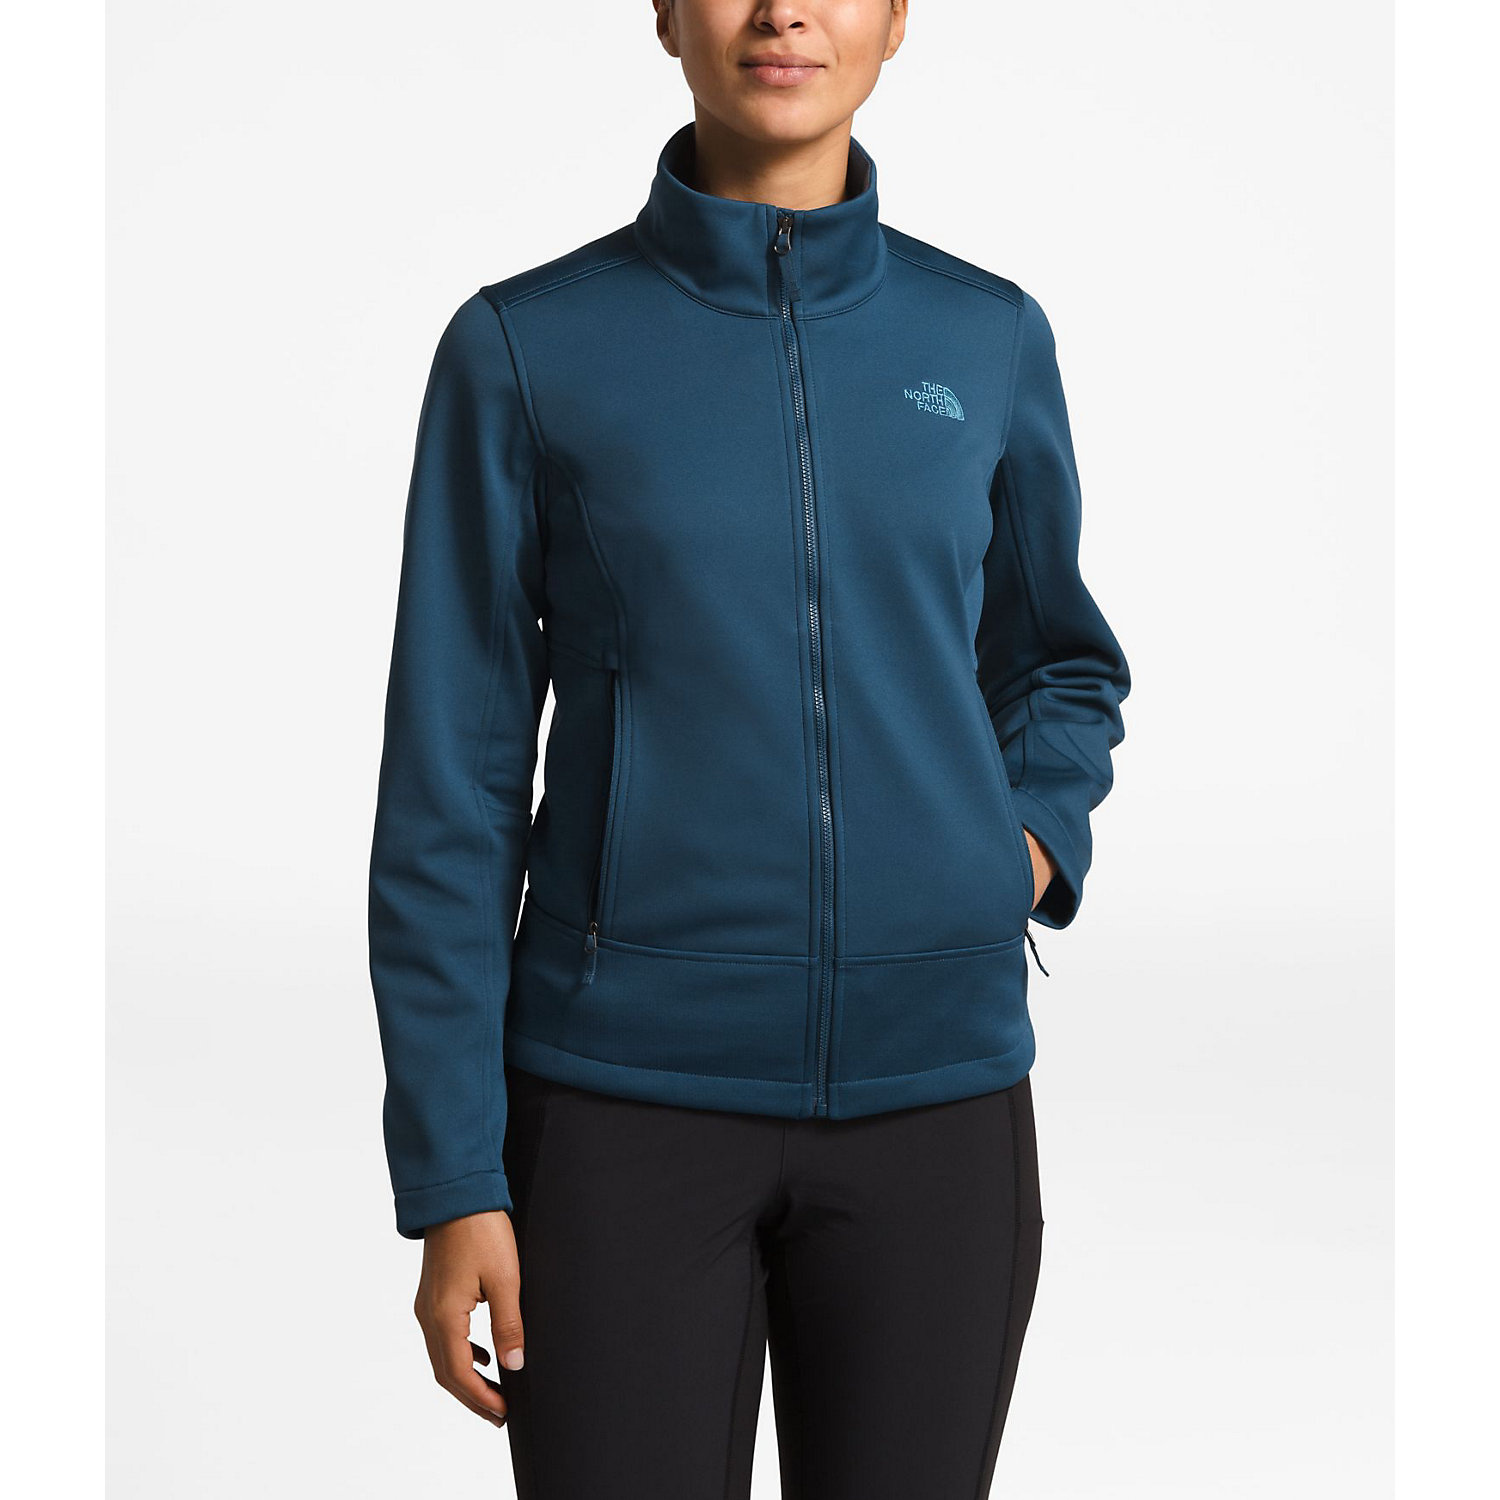 9bcffc483 The North Face Women's Apex Canyonwall Jacket